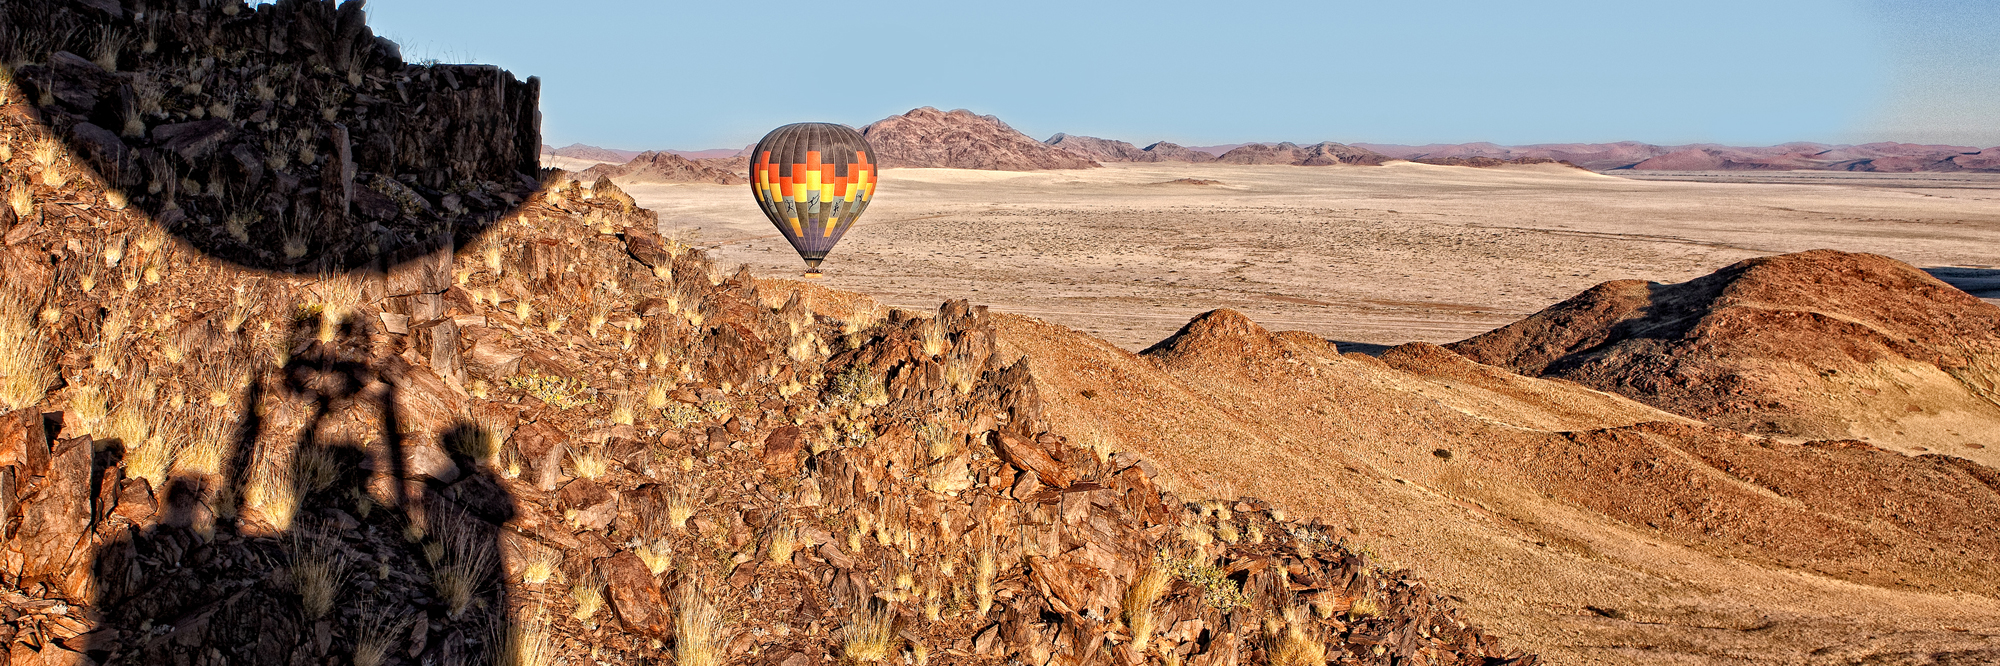 namib-sky-balloon-safaris-5-2